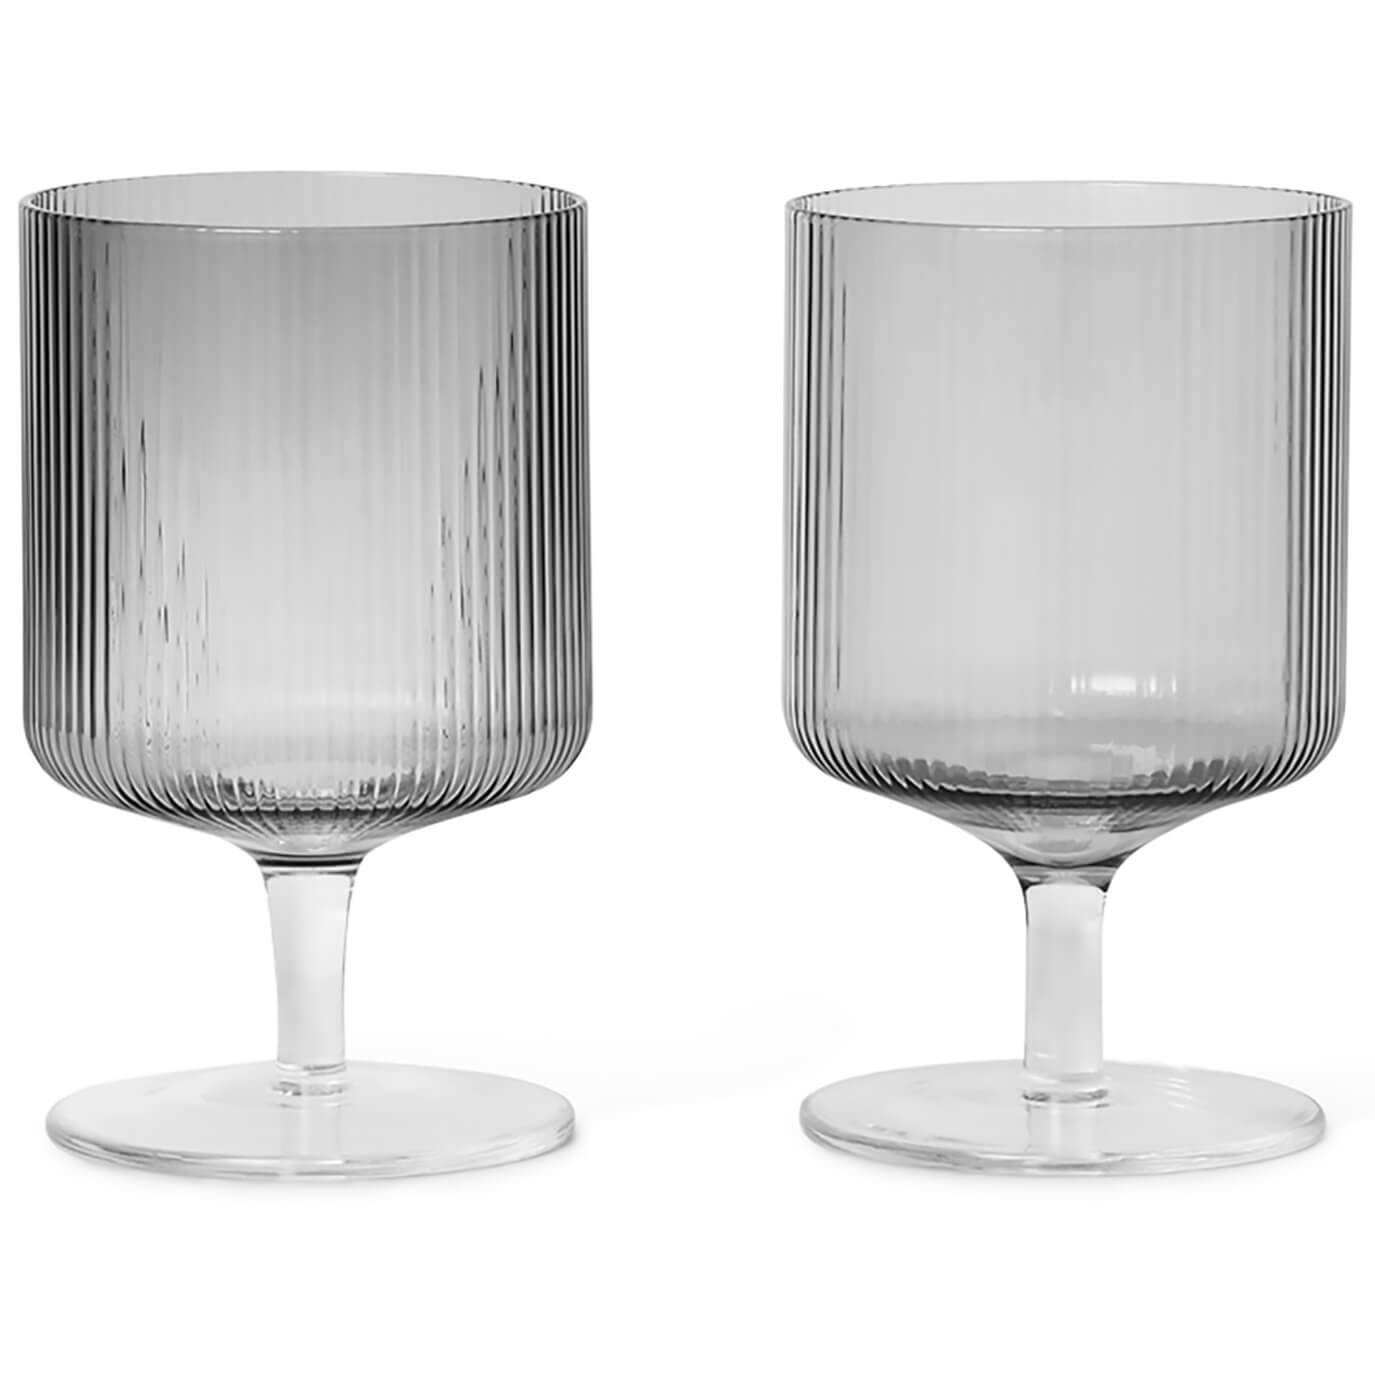 Ferm Living Ripple Wine Glasses - Smoked Grey (Set of 2)